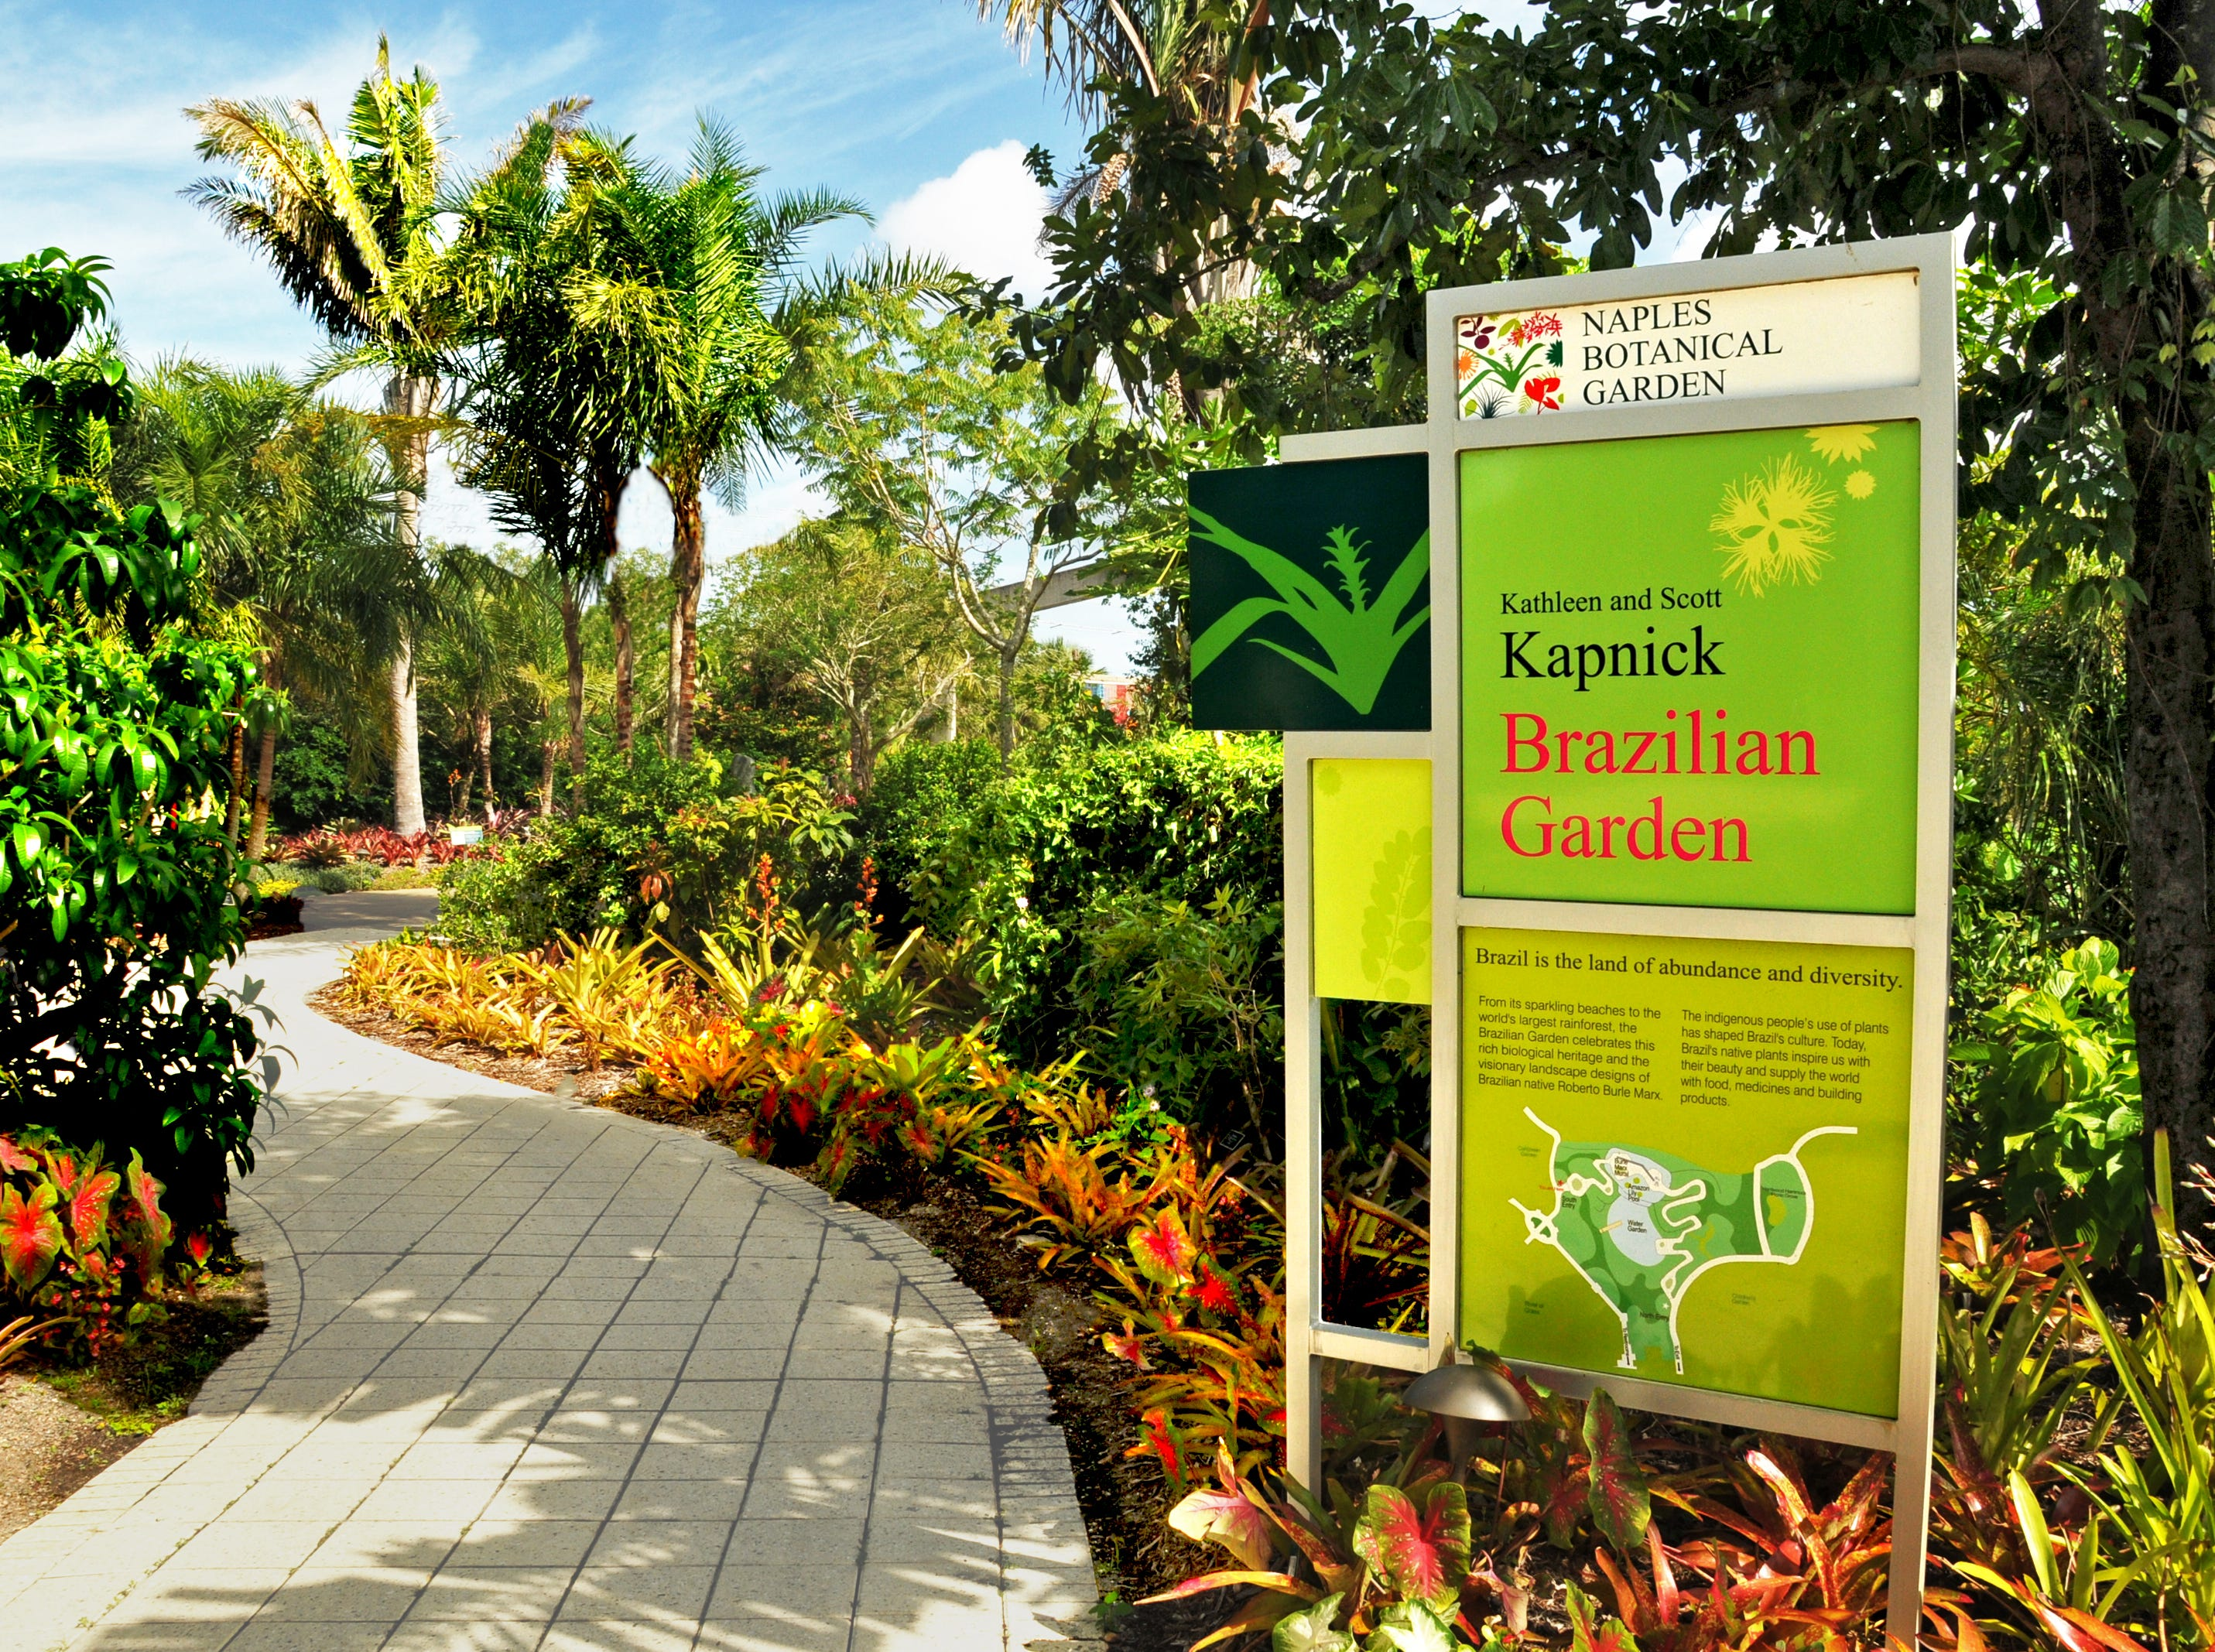 The Kathleen and Scott Kapnick Brazilian Garden at the Naples Botanical Gardens is bold and gives great tribute to the country.